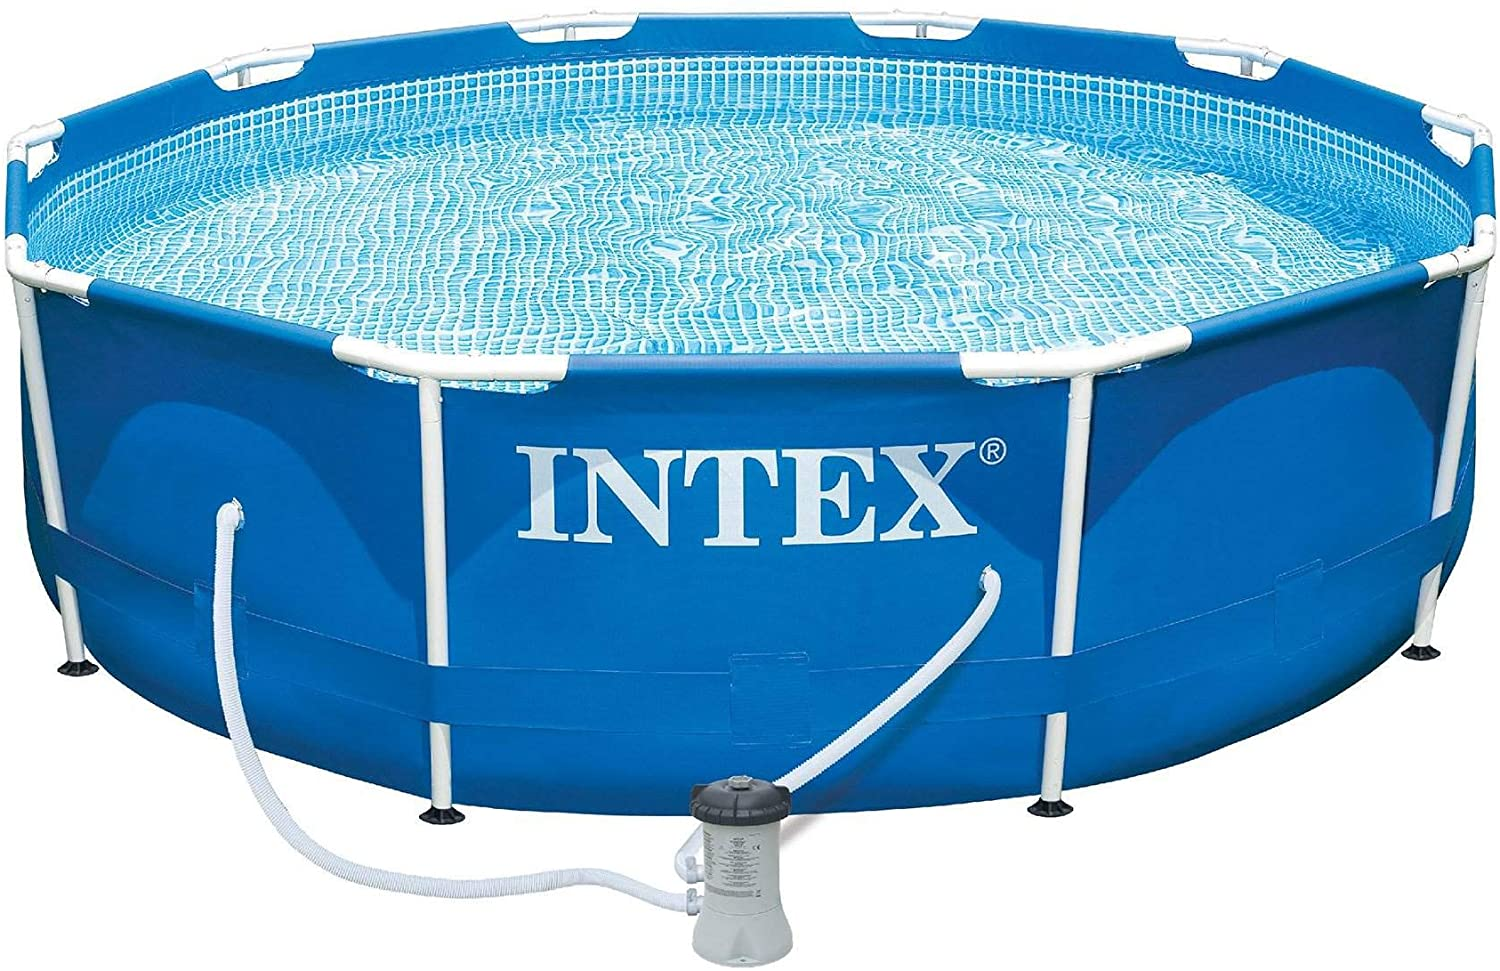 intex 10 039 x 30 034 metal frame swimming pool ebay. Black Bedroom Furniture Sets. Home Design Ideas